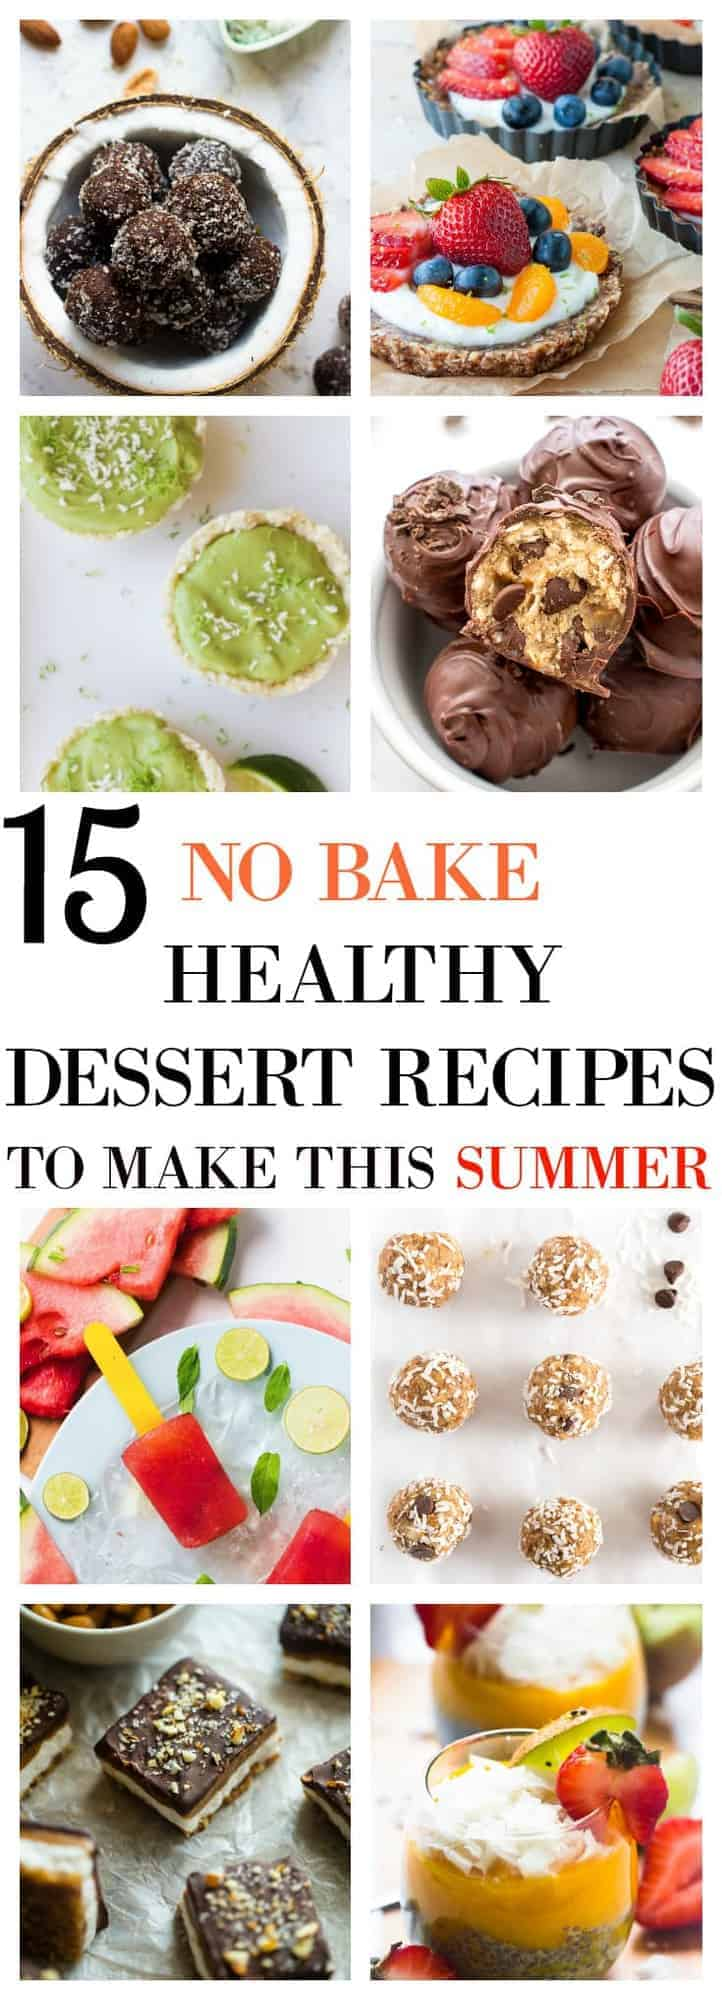 These 15 Healthy No Bake Dessert Recipes with help you cool off and enjoy summer completely with no guilt! Lots of quick and easy vegan and gluten free options!